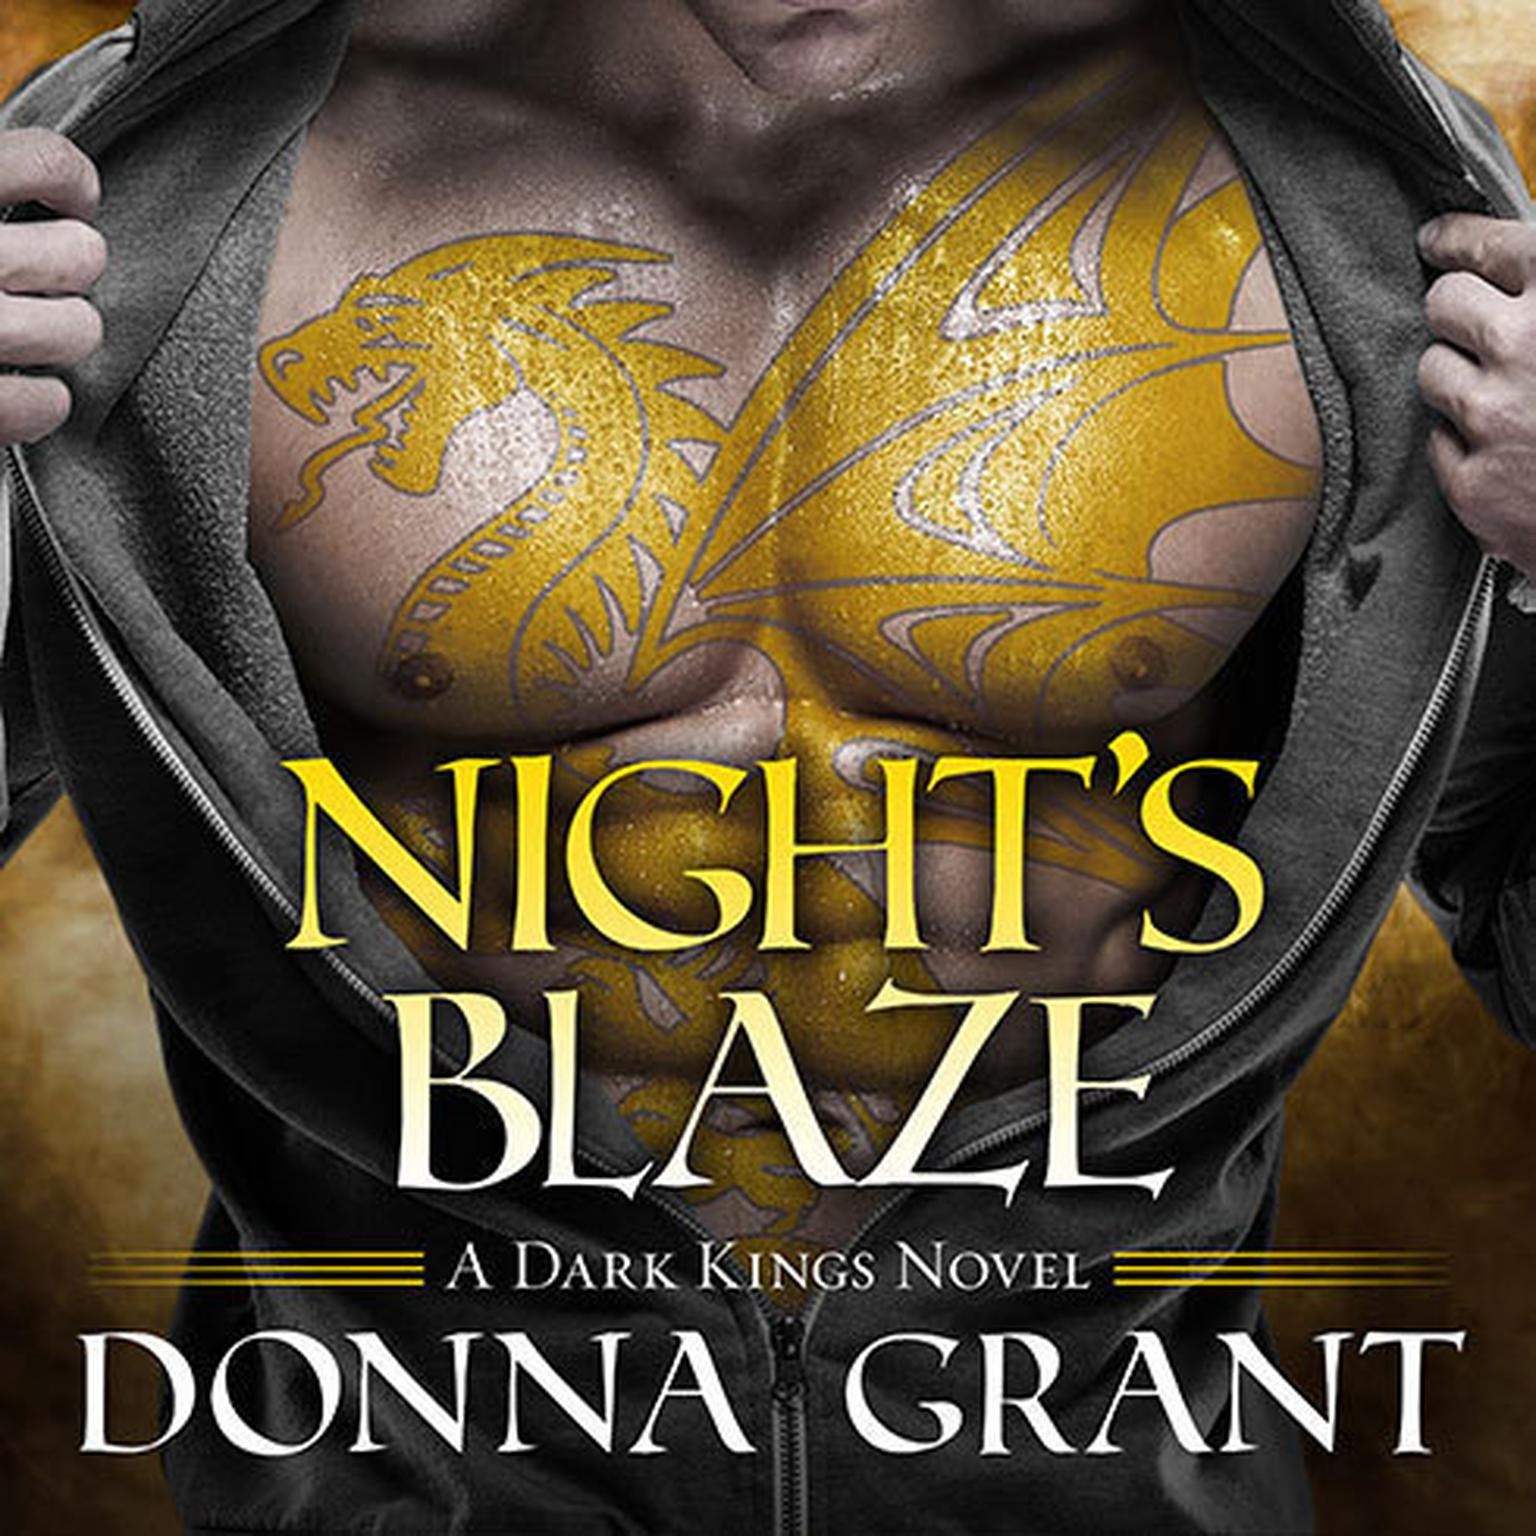 Printable Night's Blaze Audiobook Cover Art